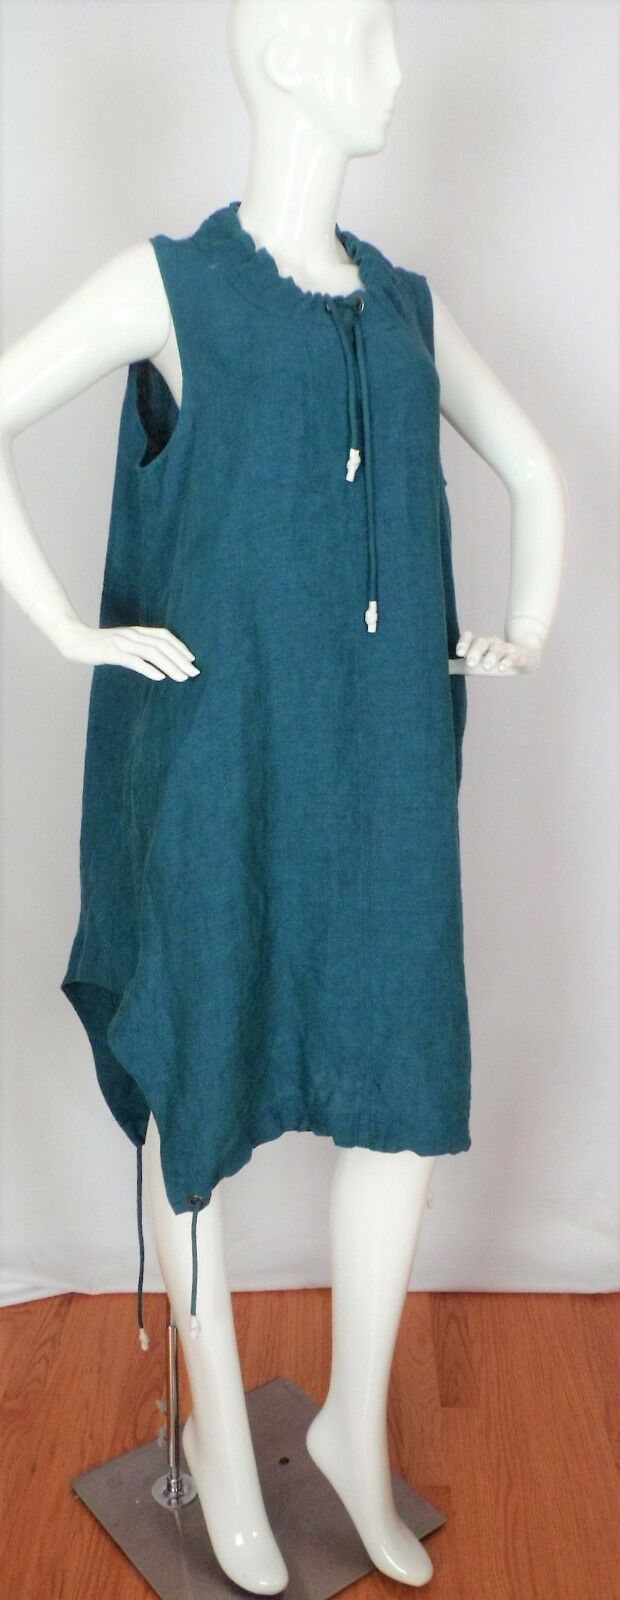 NEW crea Concepts Emerald Green Sporty Linen Dress Lagenlook Size 46 NWT